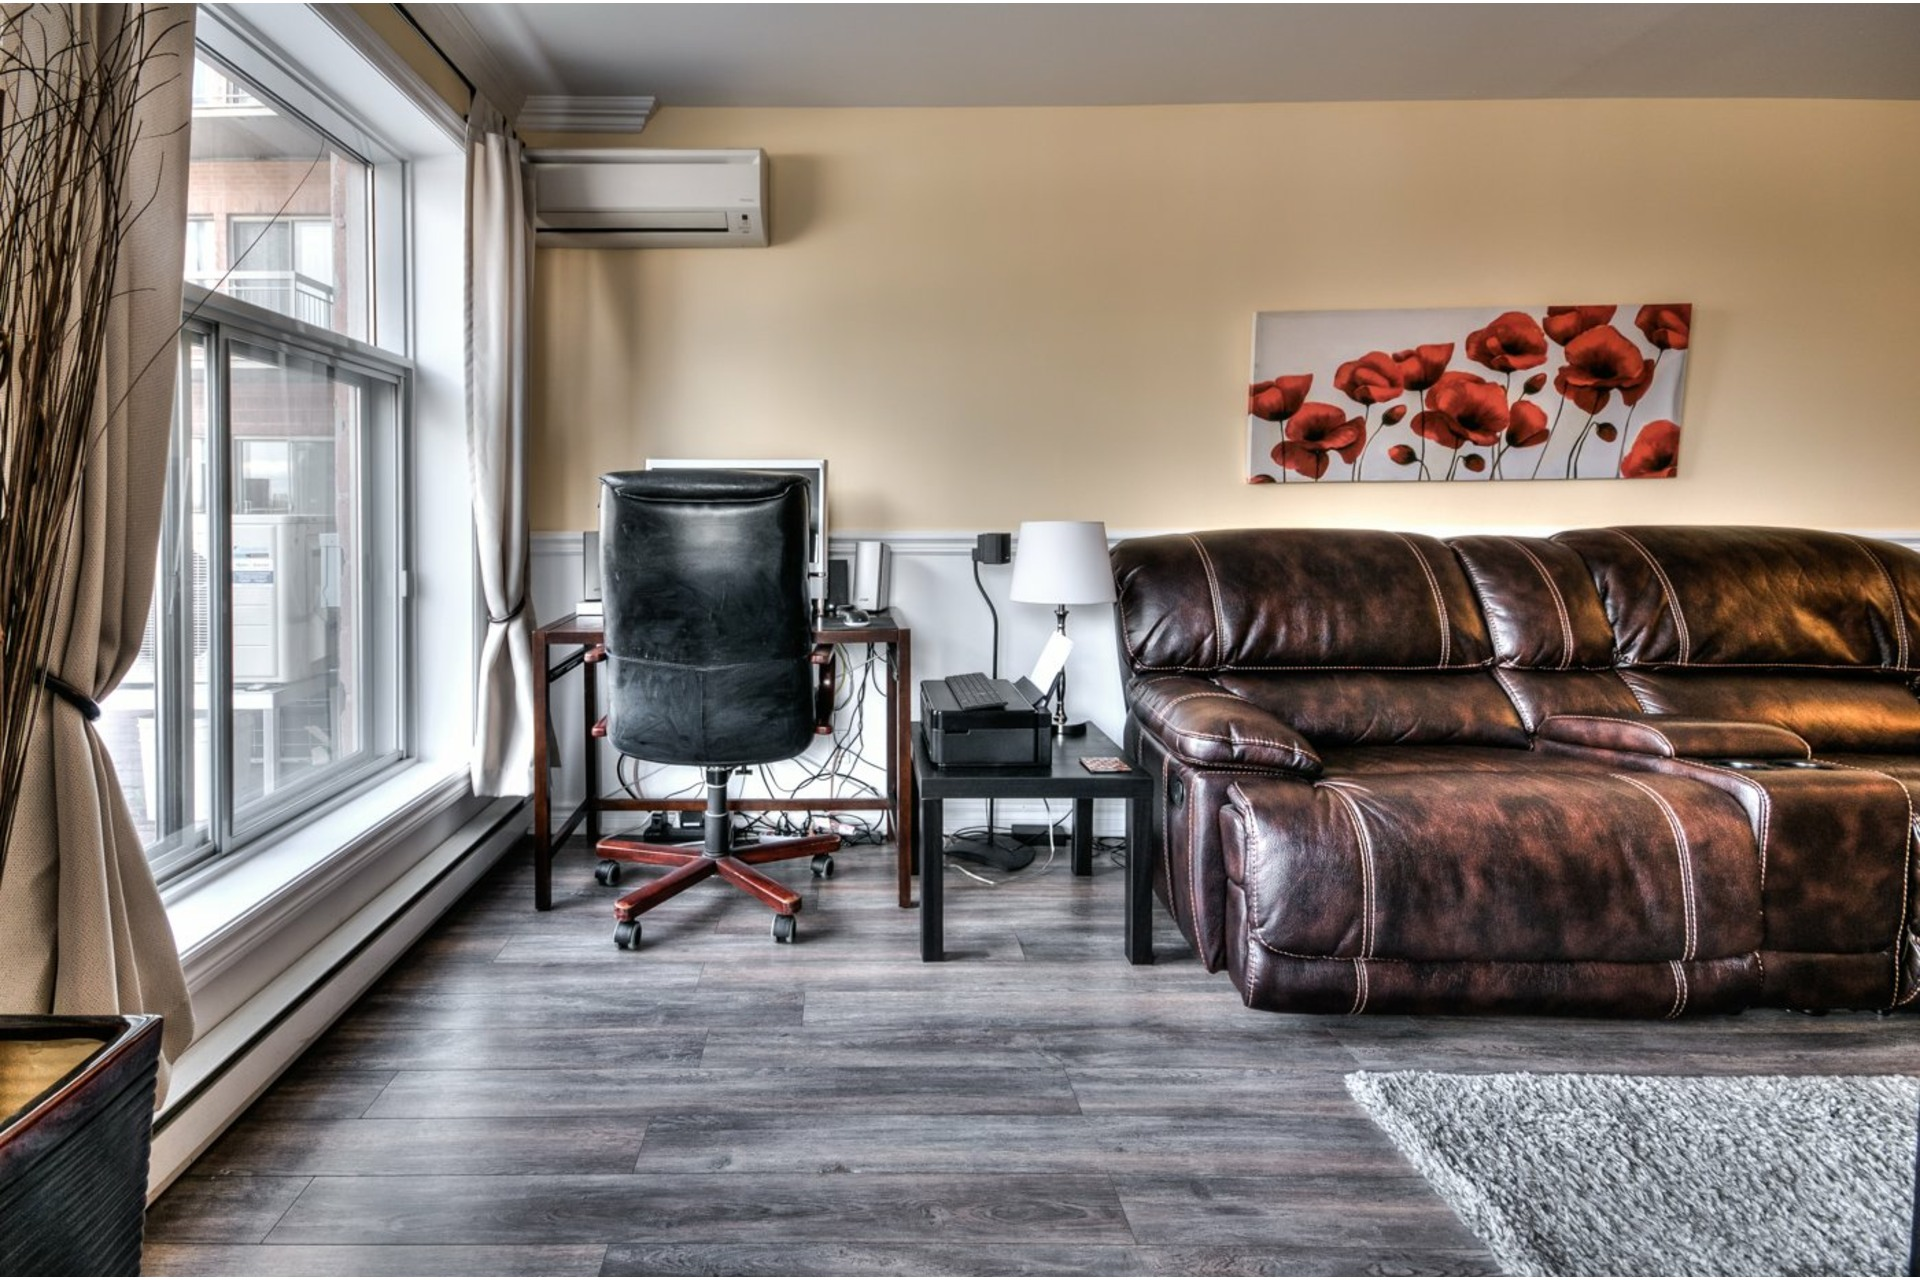 image 11 - Apartment For sale Brossard - 5 rooms